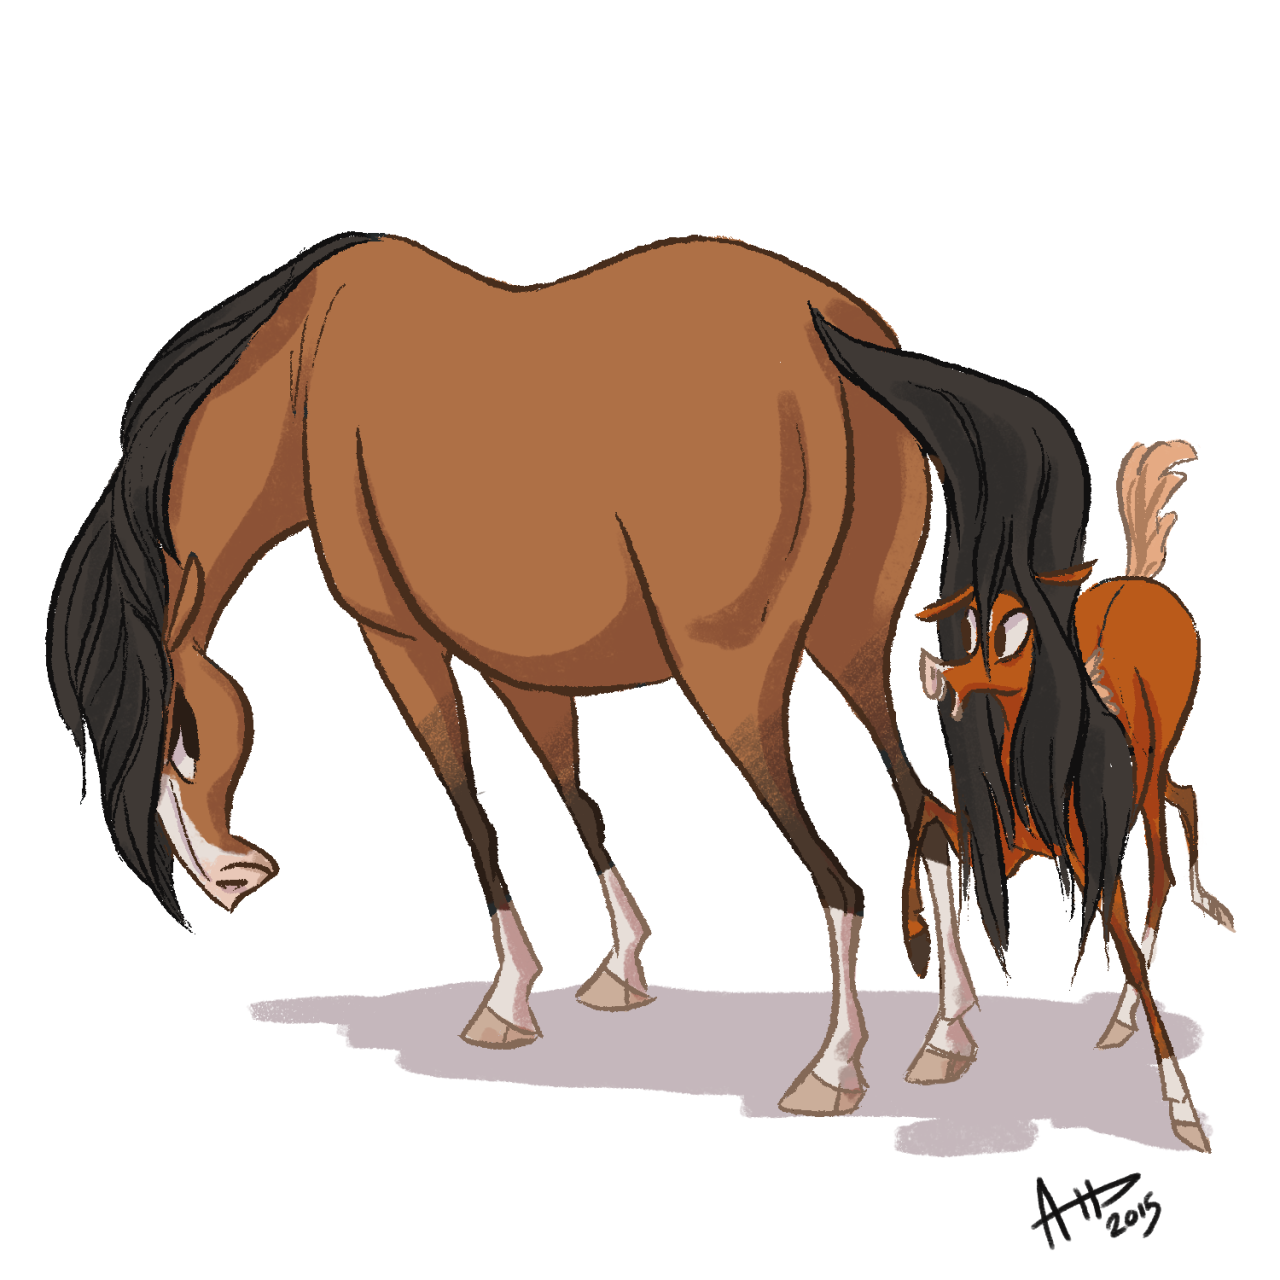 dhd 034: mare and foal since i missed out yesterday, you get two